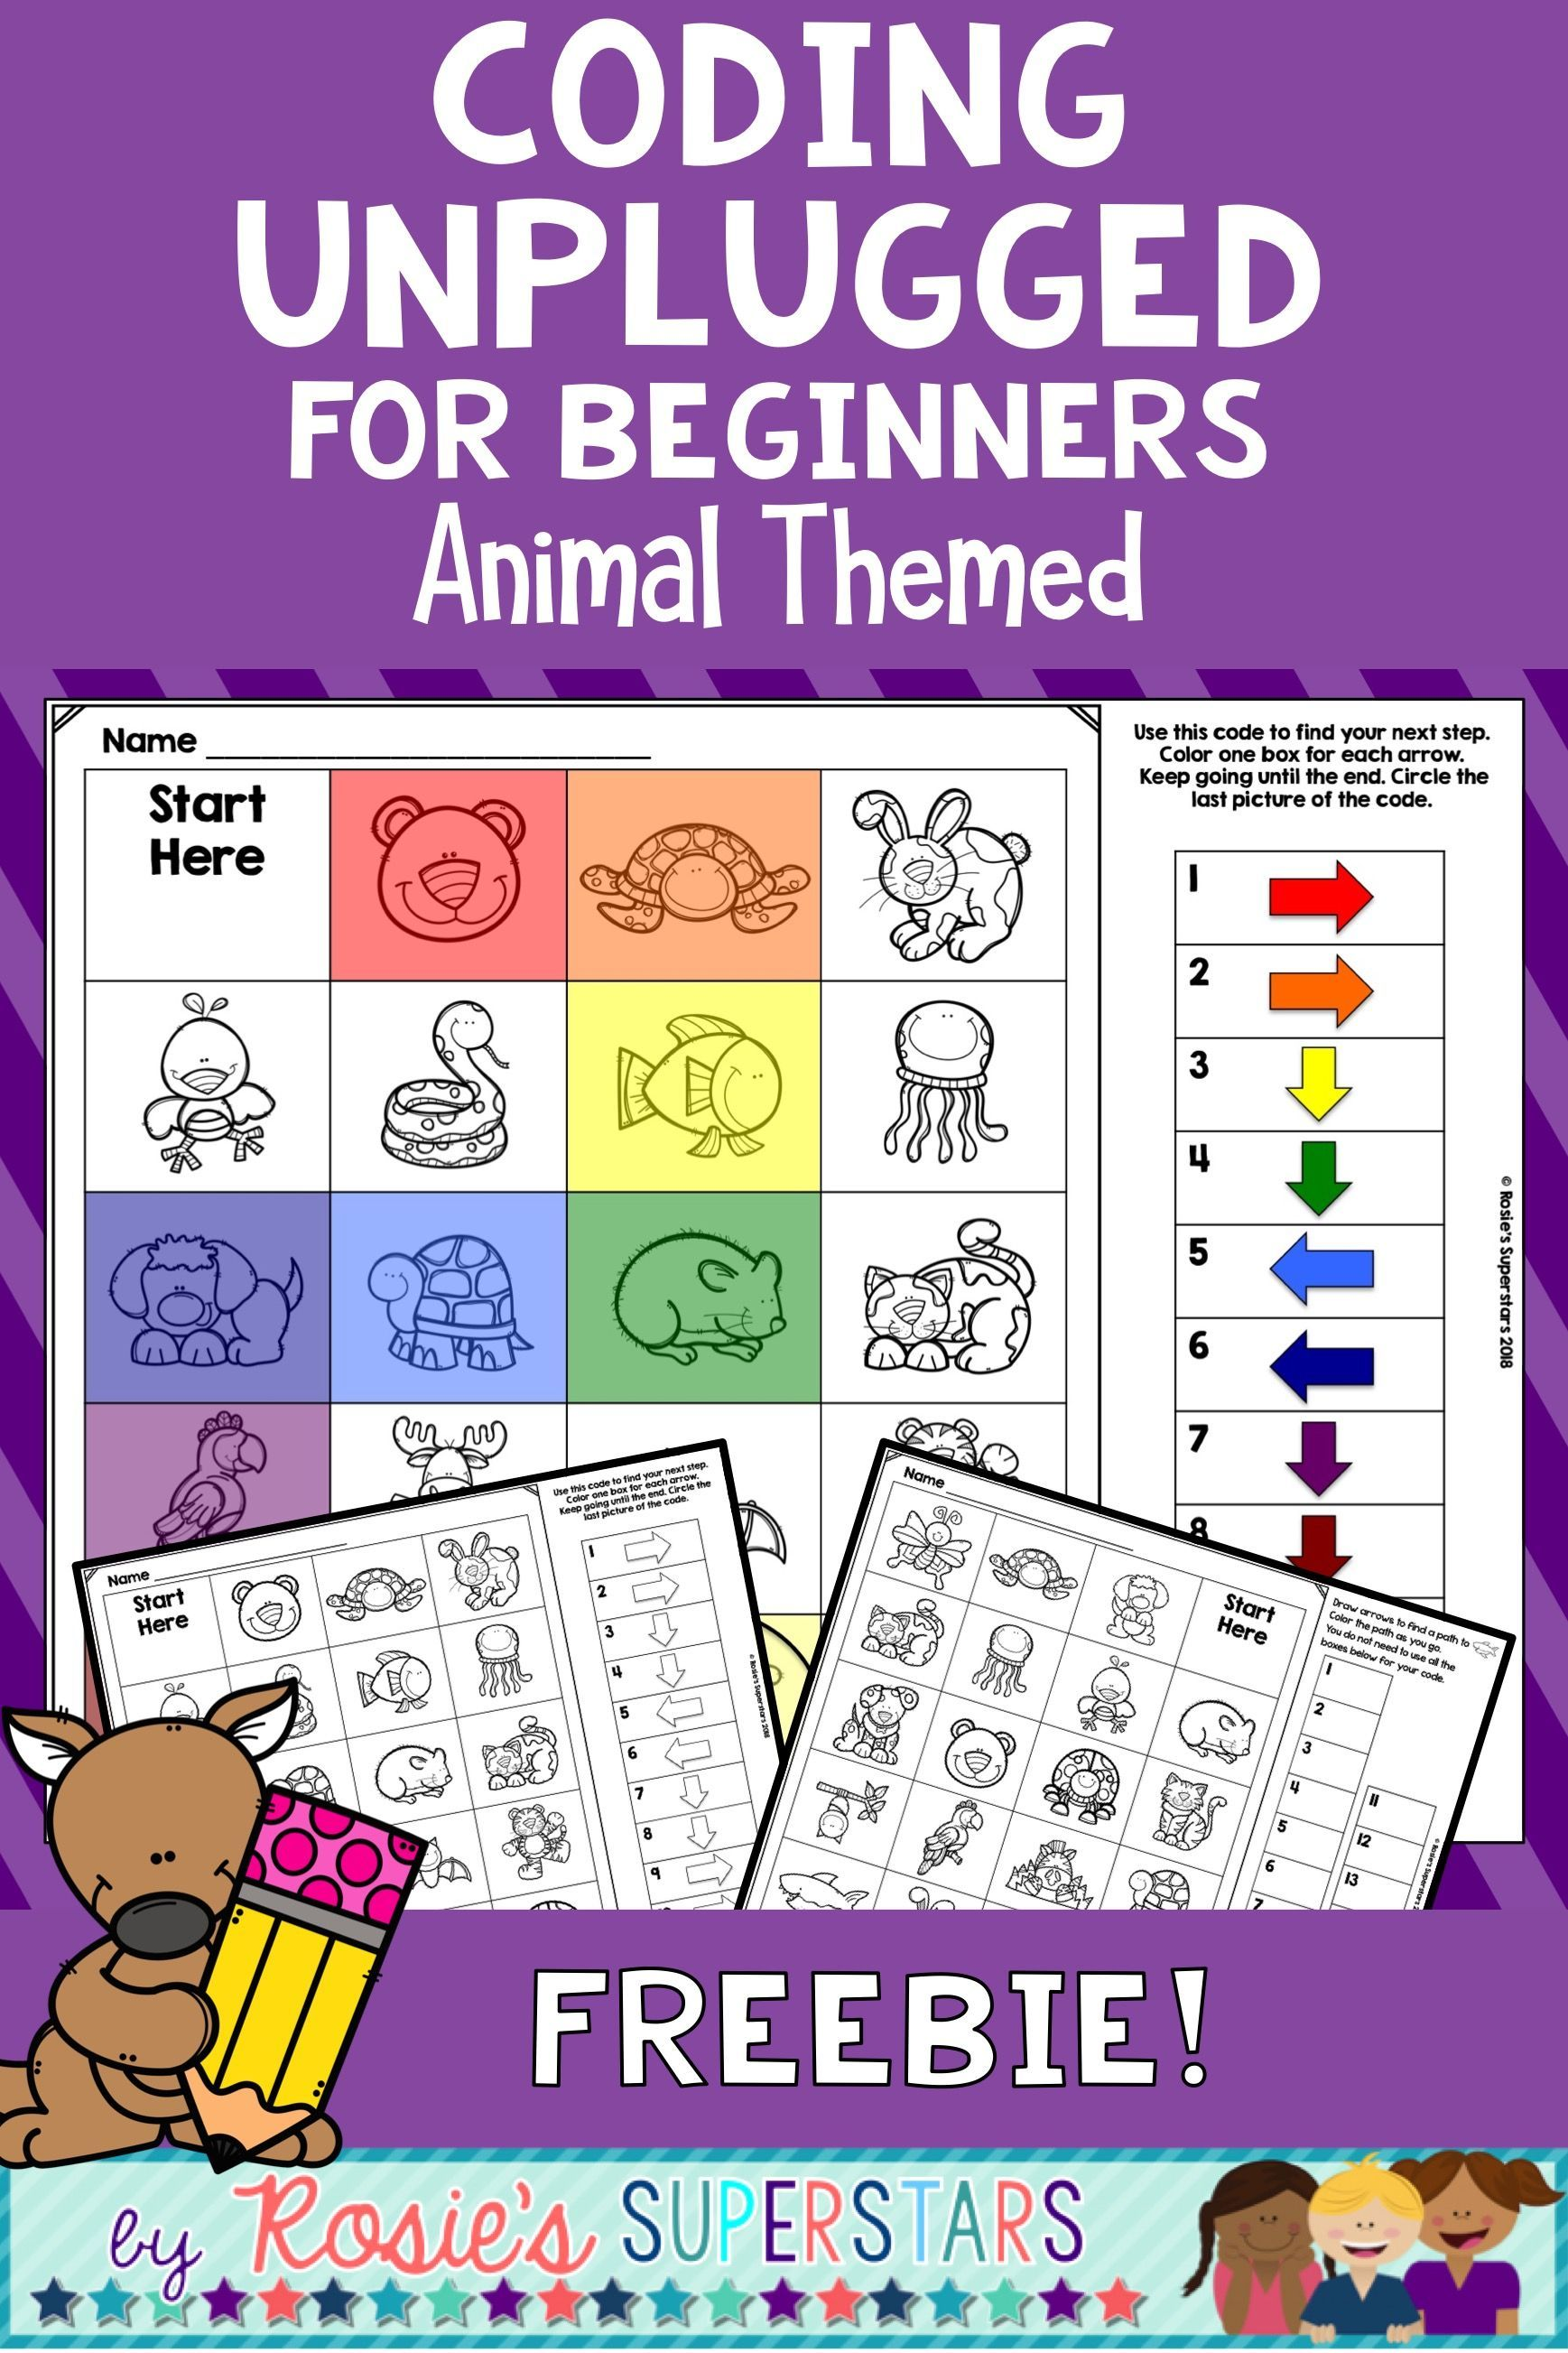 Animal Themed Unplugged Coding For Beginners Freebie Unplugged Coding Activities Teaching Coding Coding For Kids